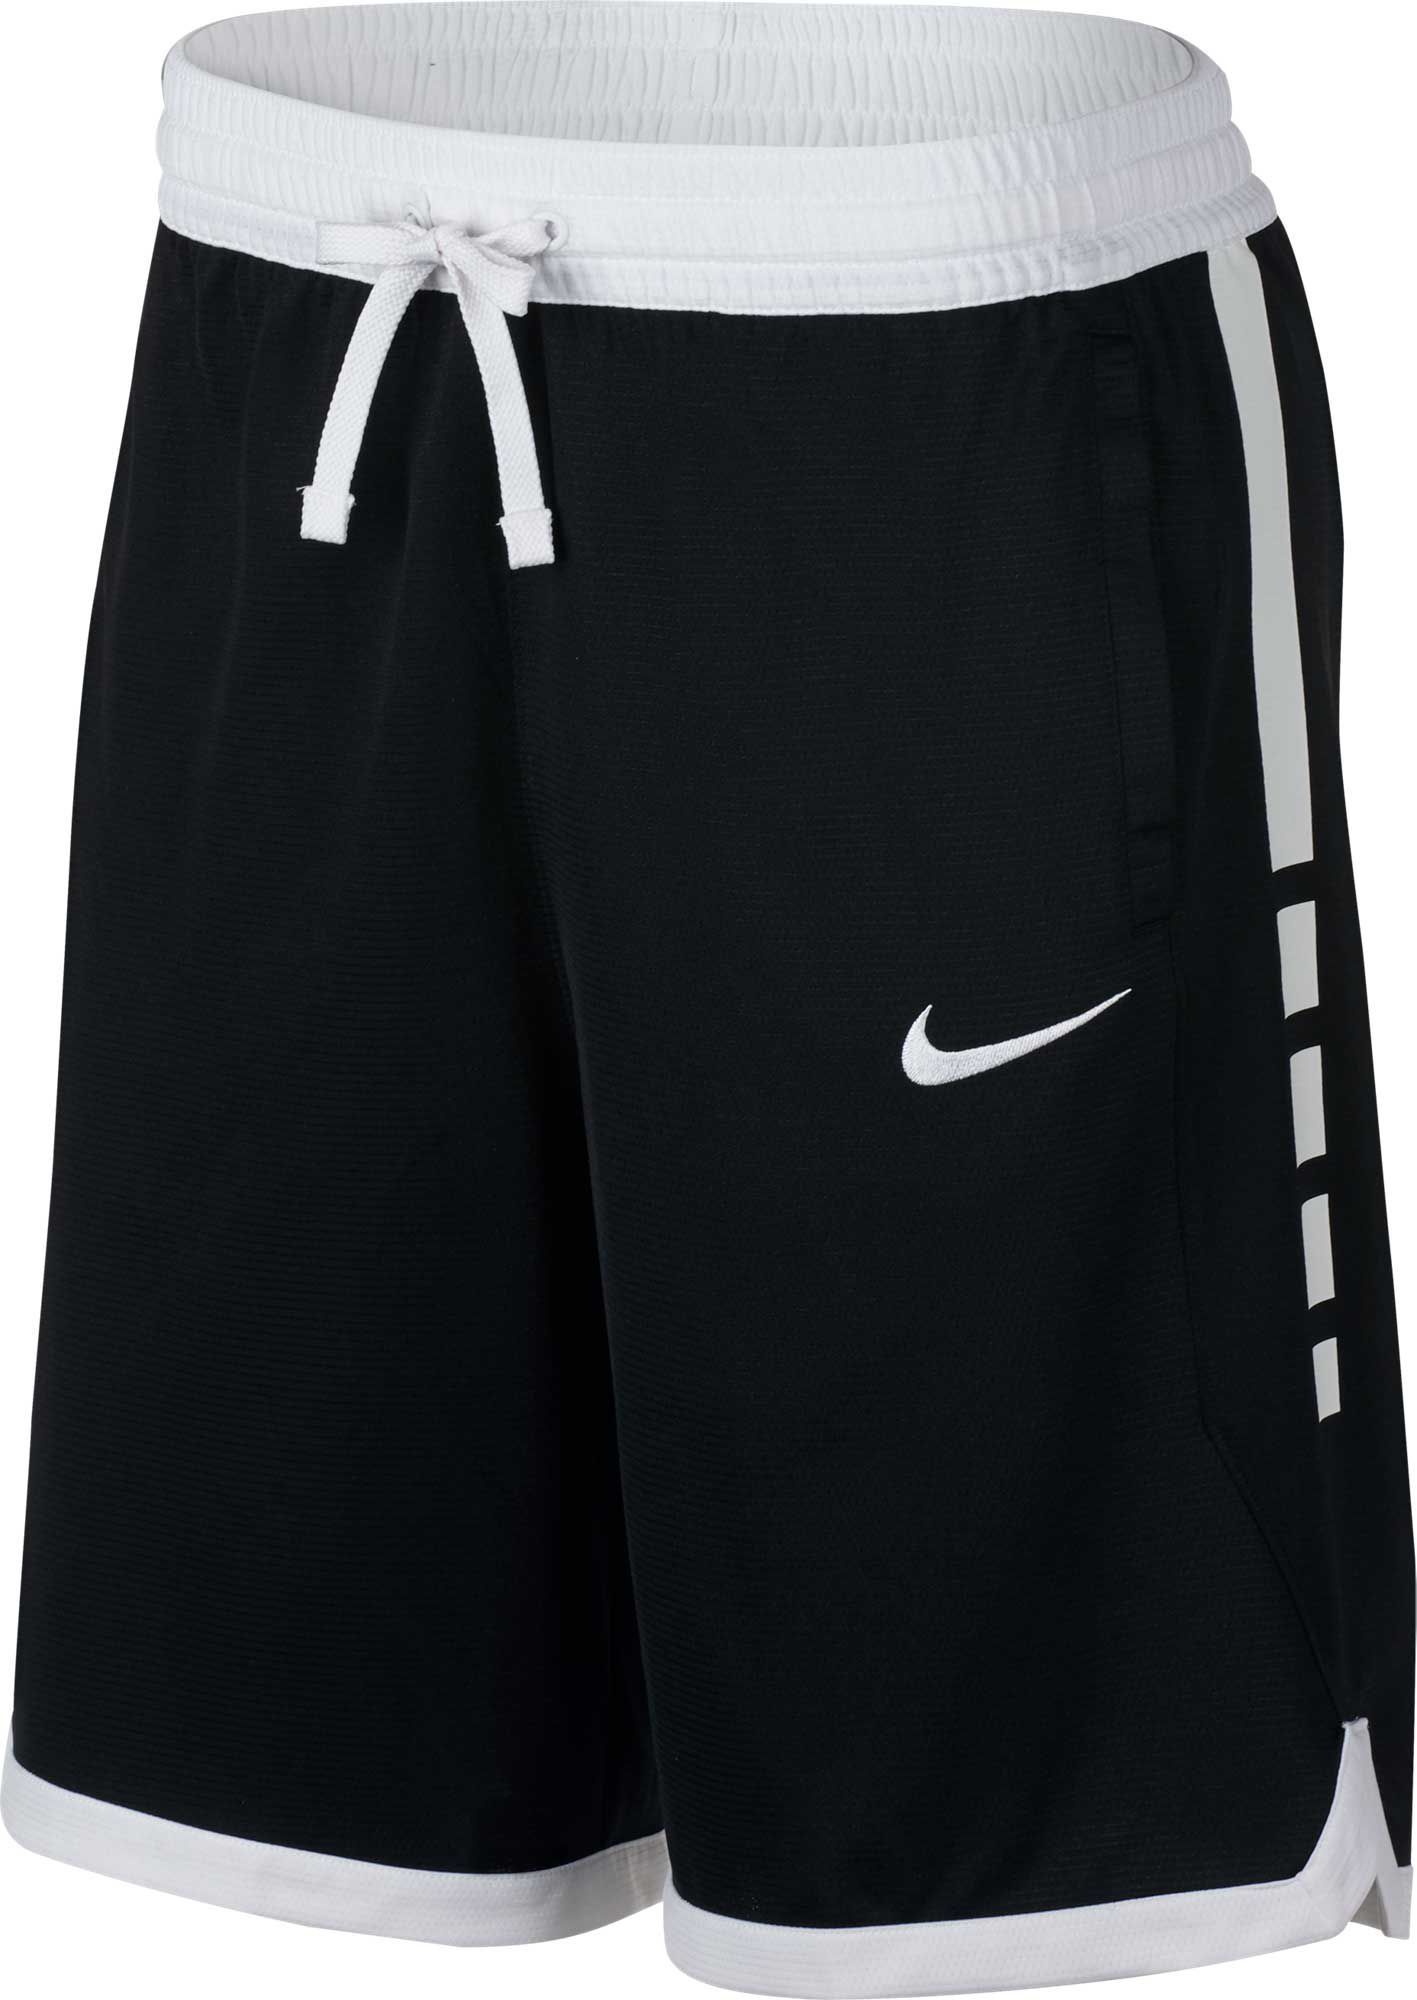 d19a2c24 Nike Men's Dry Elite Stripe Basketball Shorts in 2019 | Products ...